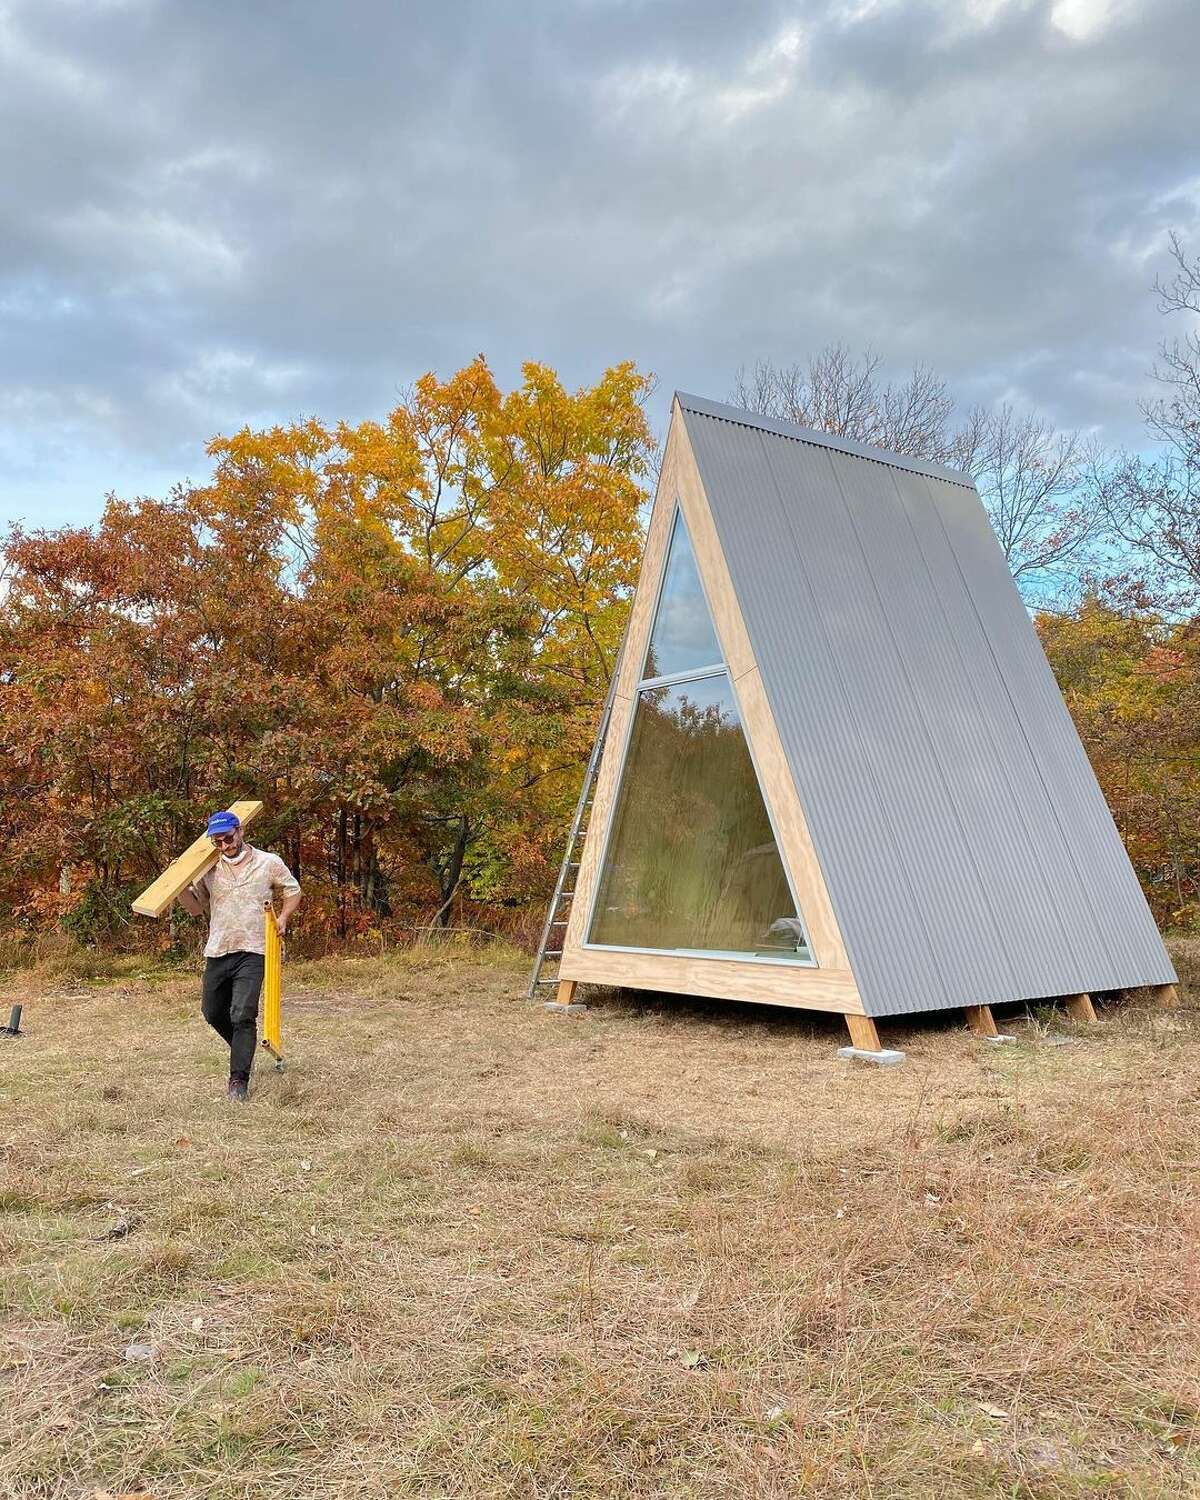 Co-founder of Den Outdoors, Mike Romanowicz, sees the convergence of a few trends that are helping spark interest in prefab cabins: the desire for more unique, wellness-oriented experiences, and the population shift in urban centers as people seek homes outside of cities and a restorative escape.